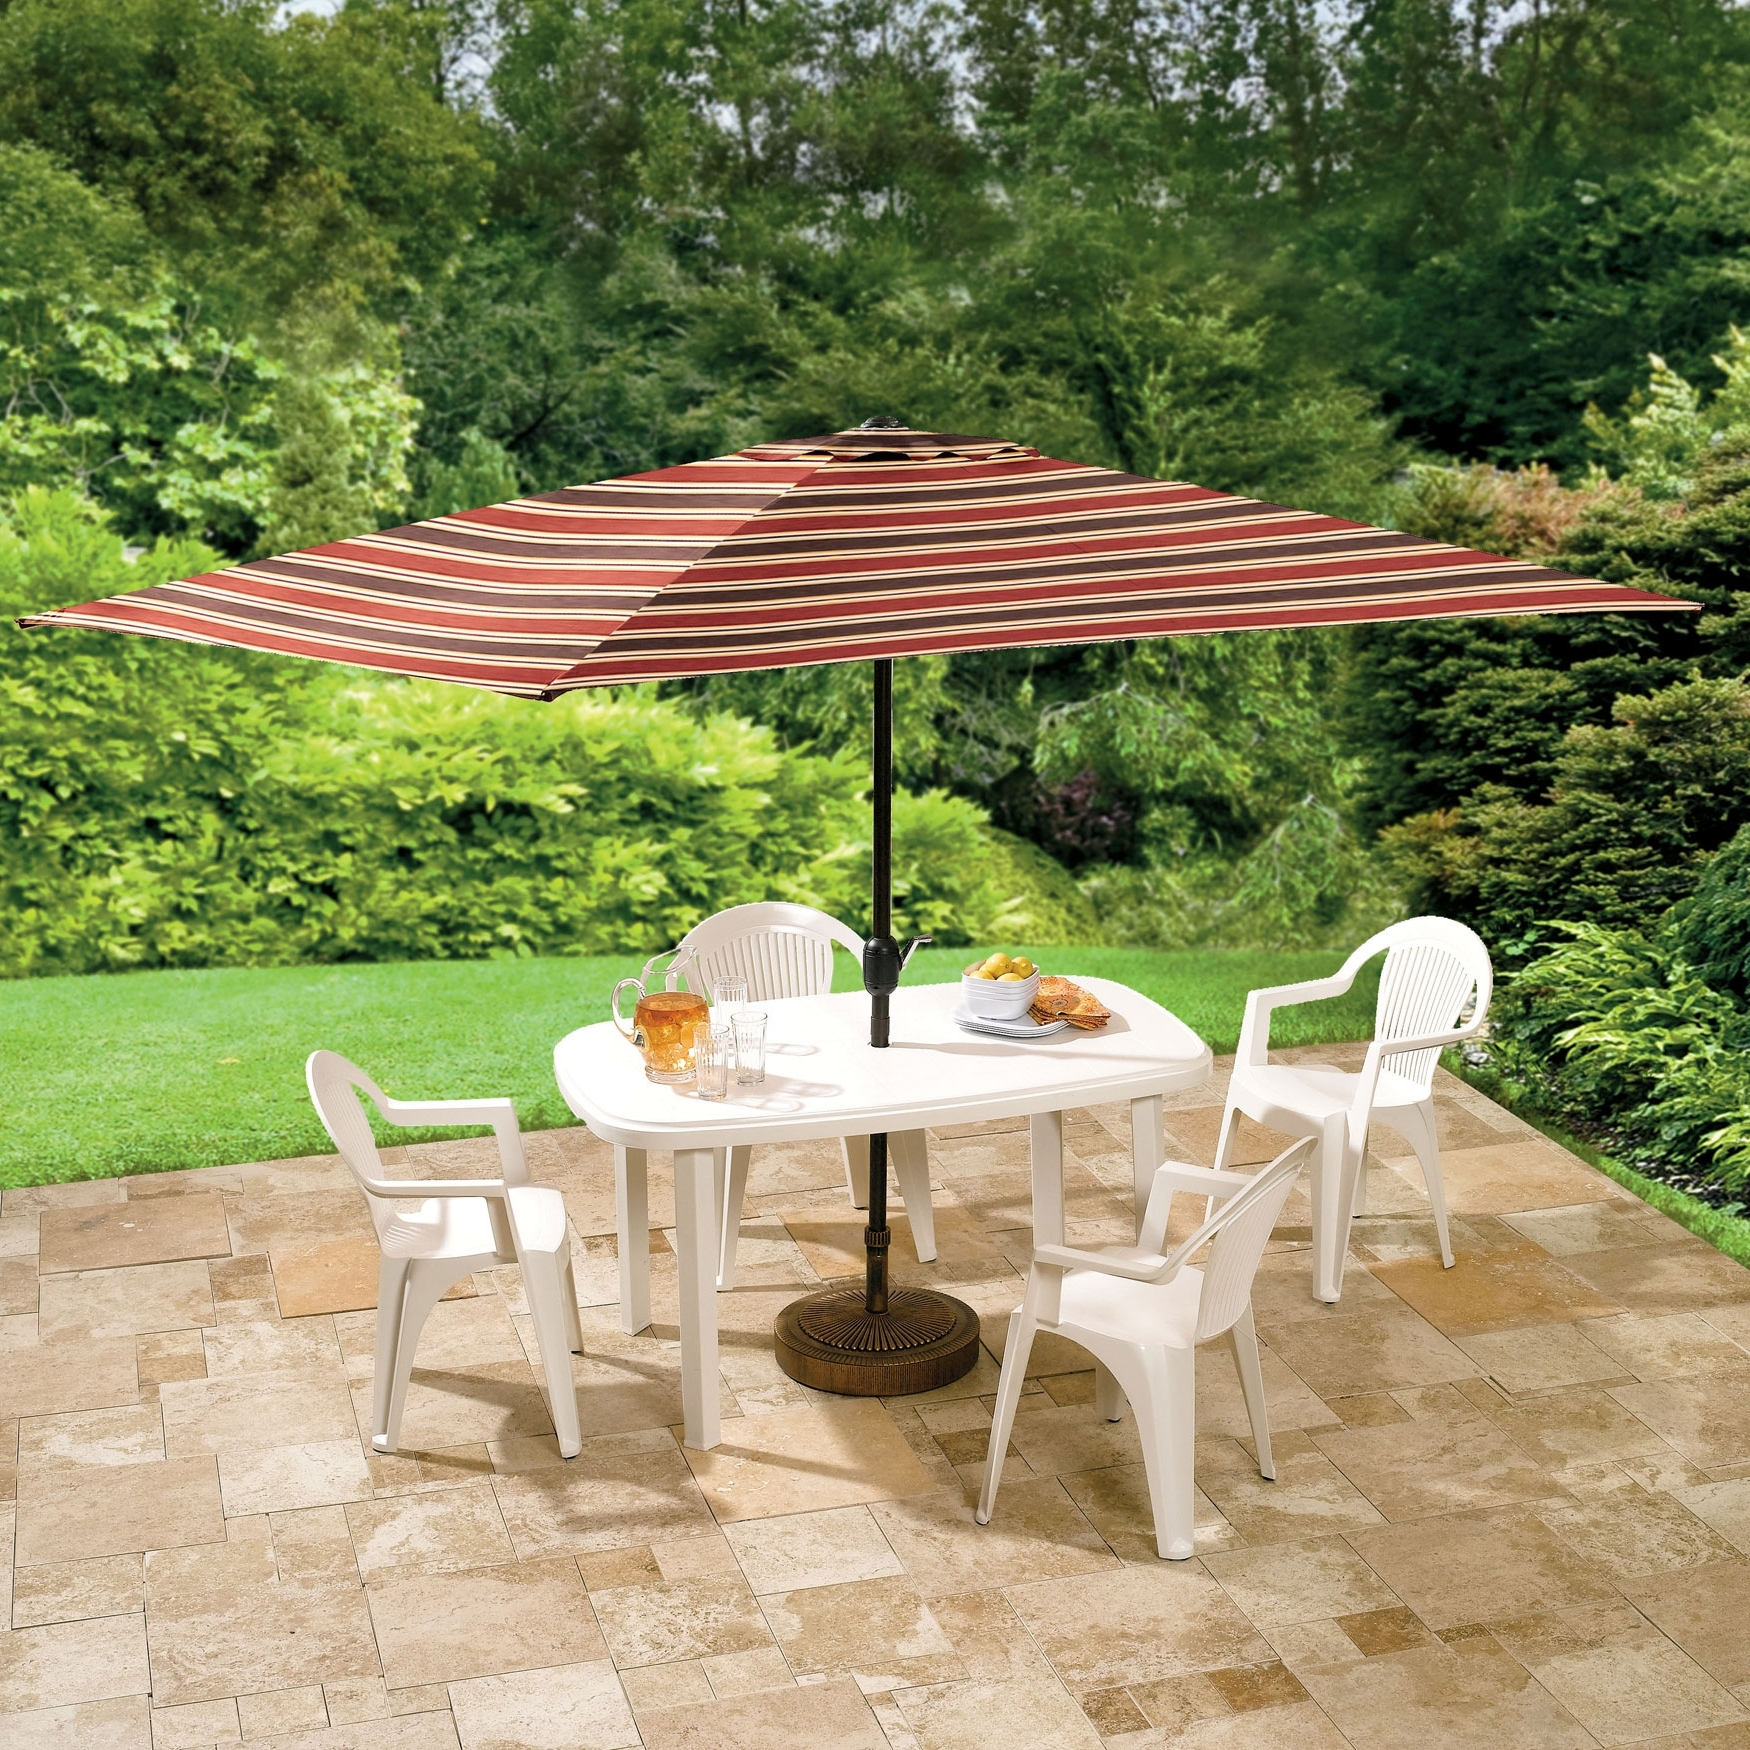 Invisibleinkradio Home Decor Within Rectangular Sunbrella Patio Umbrellas (View 5 of 20)